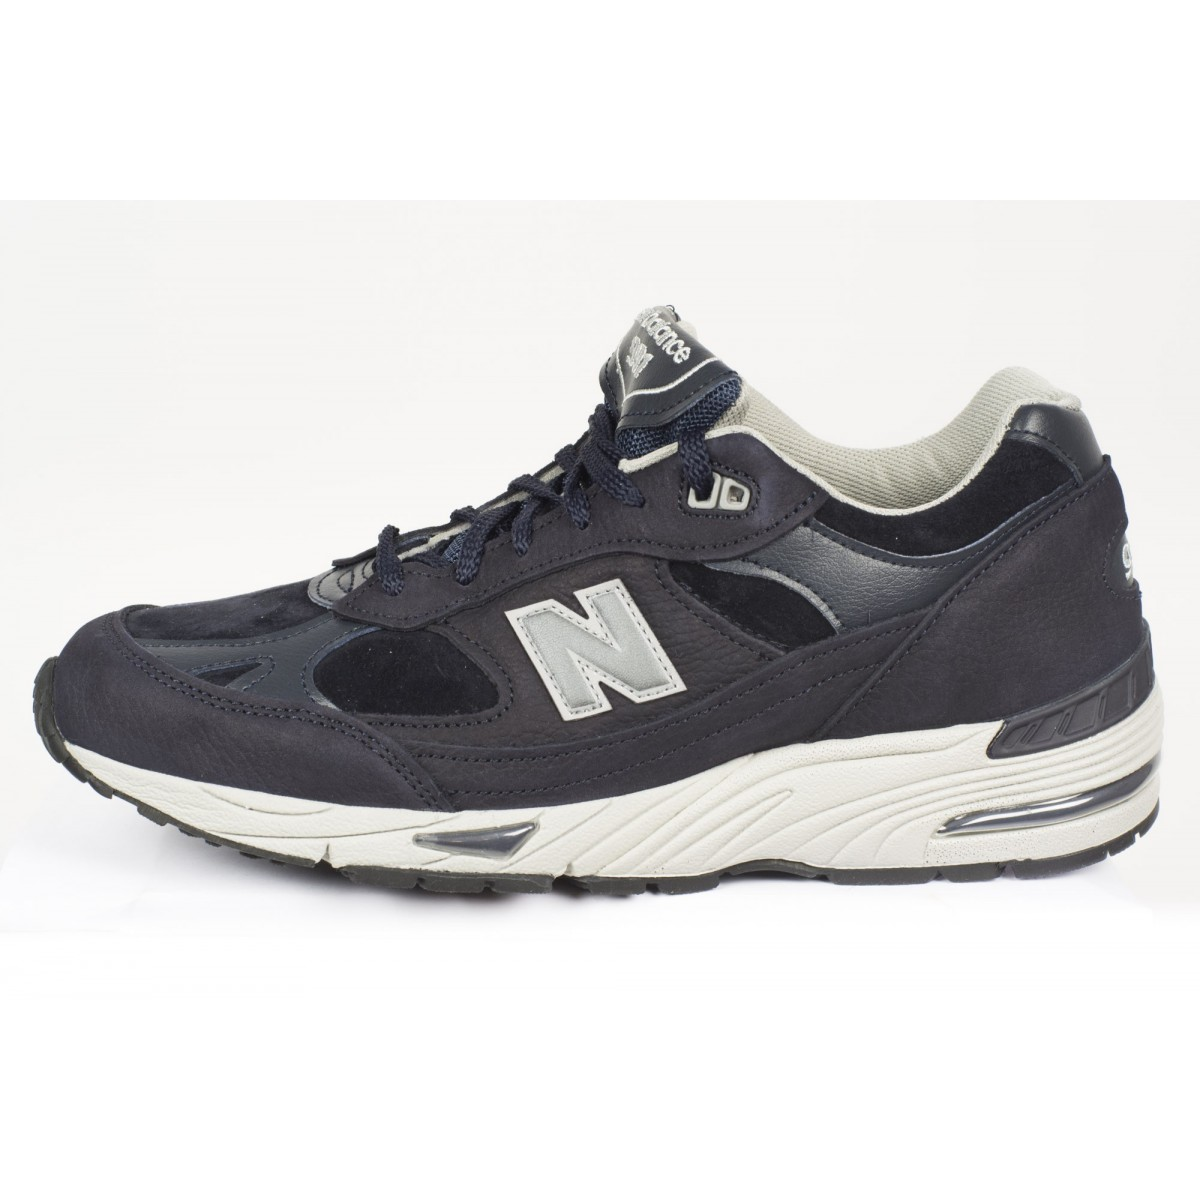 Schuhe New Balance Manner - 991 Nabuk Made In Uk NPN - Navy